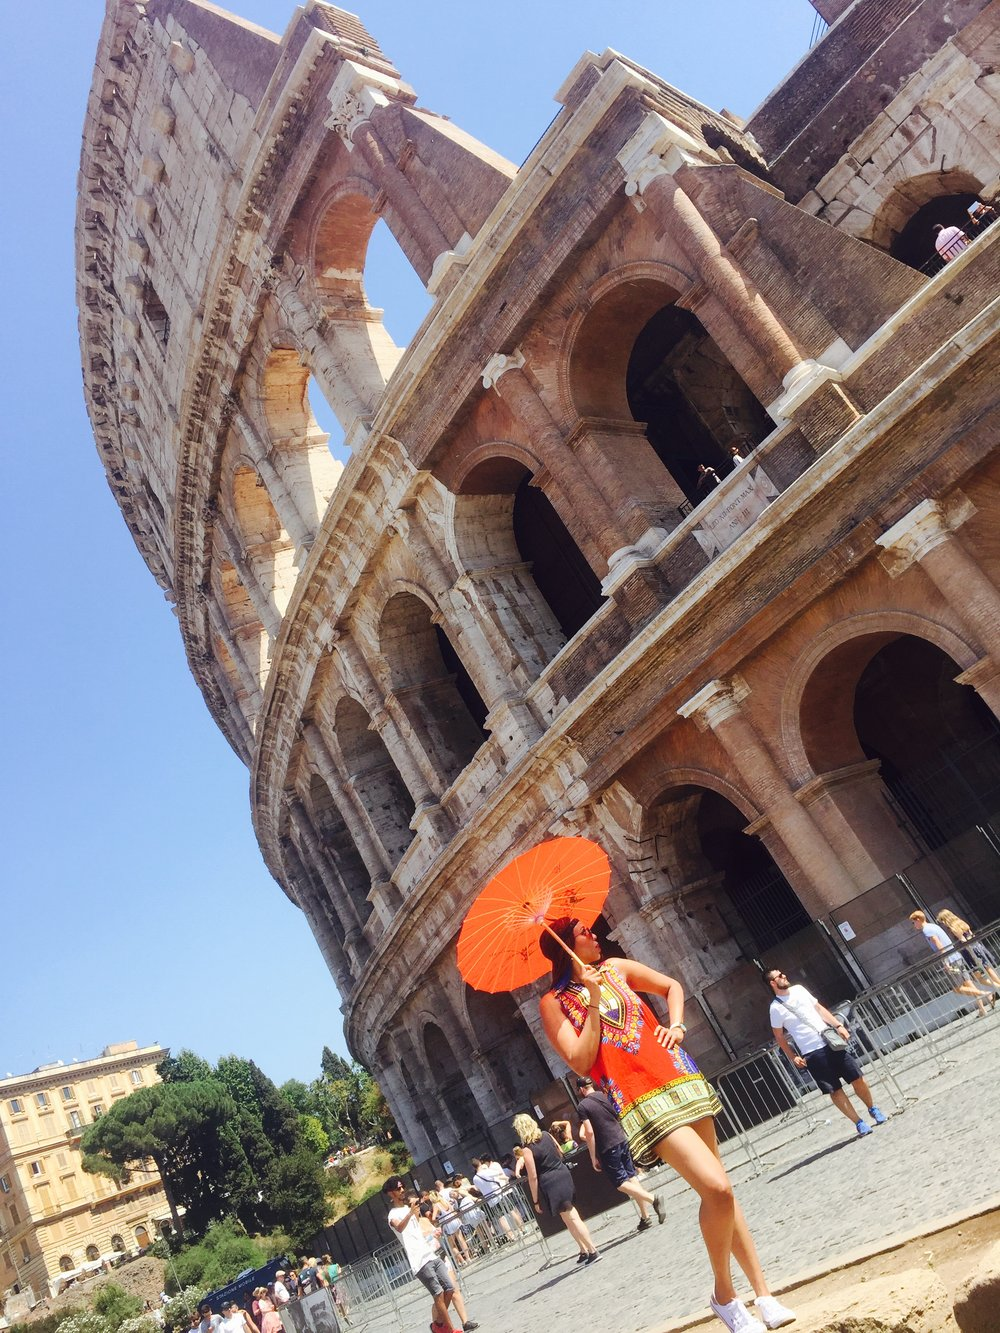 At the Colosseum in Rome, Italy in August.